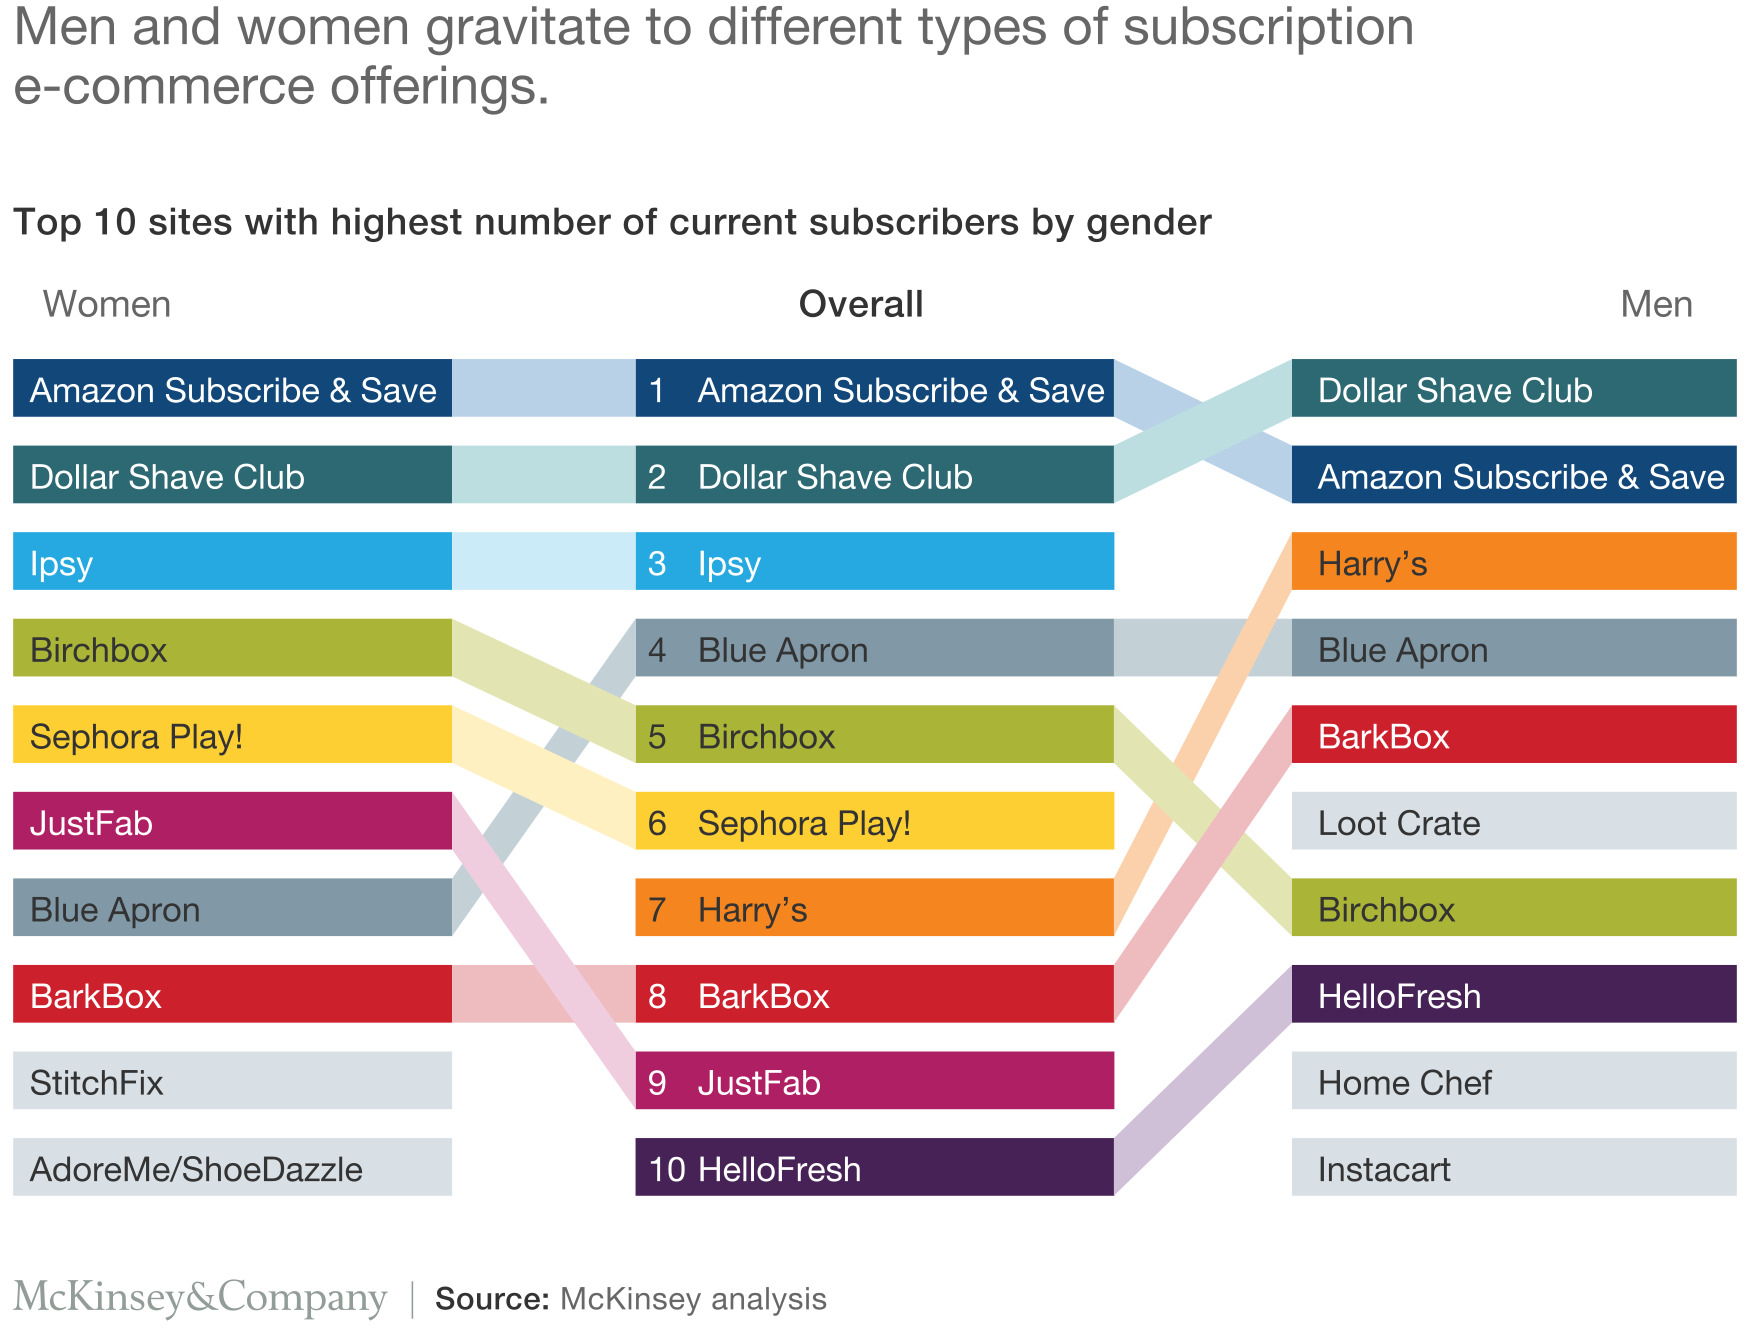 Top 10 Sites with Highest number of current subscribers by gender